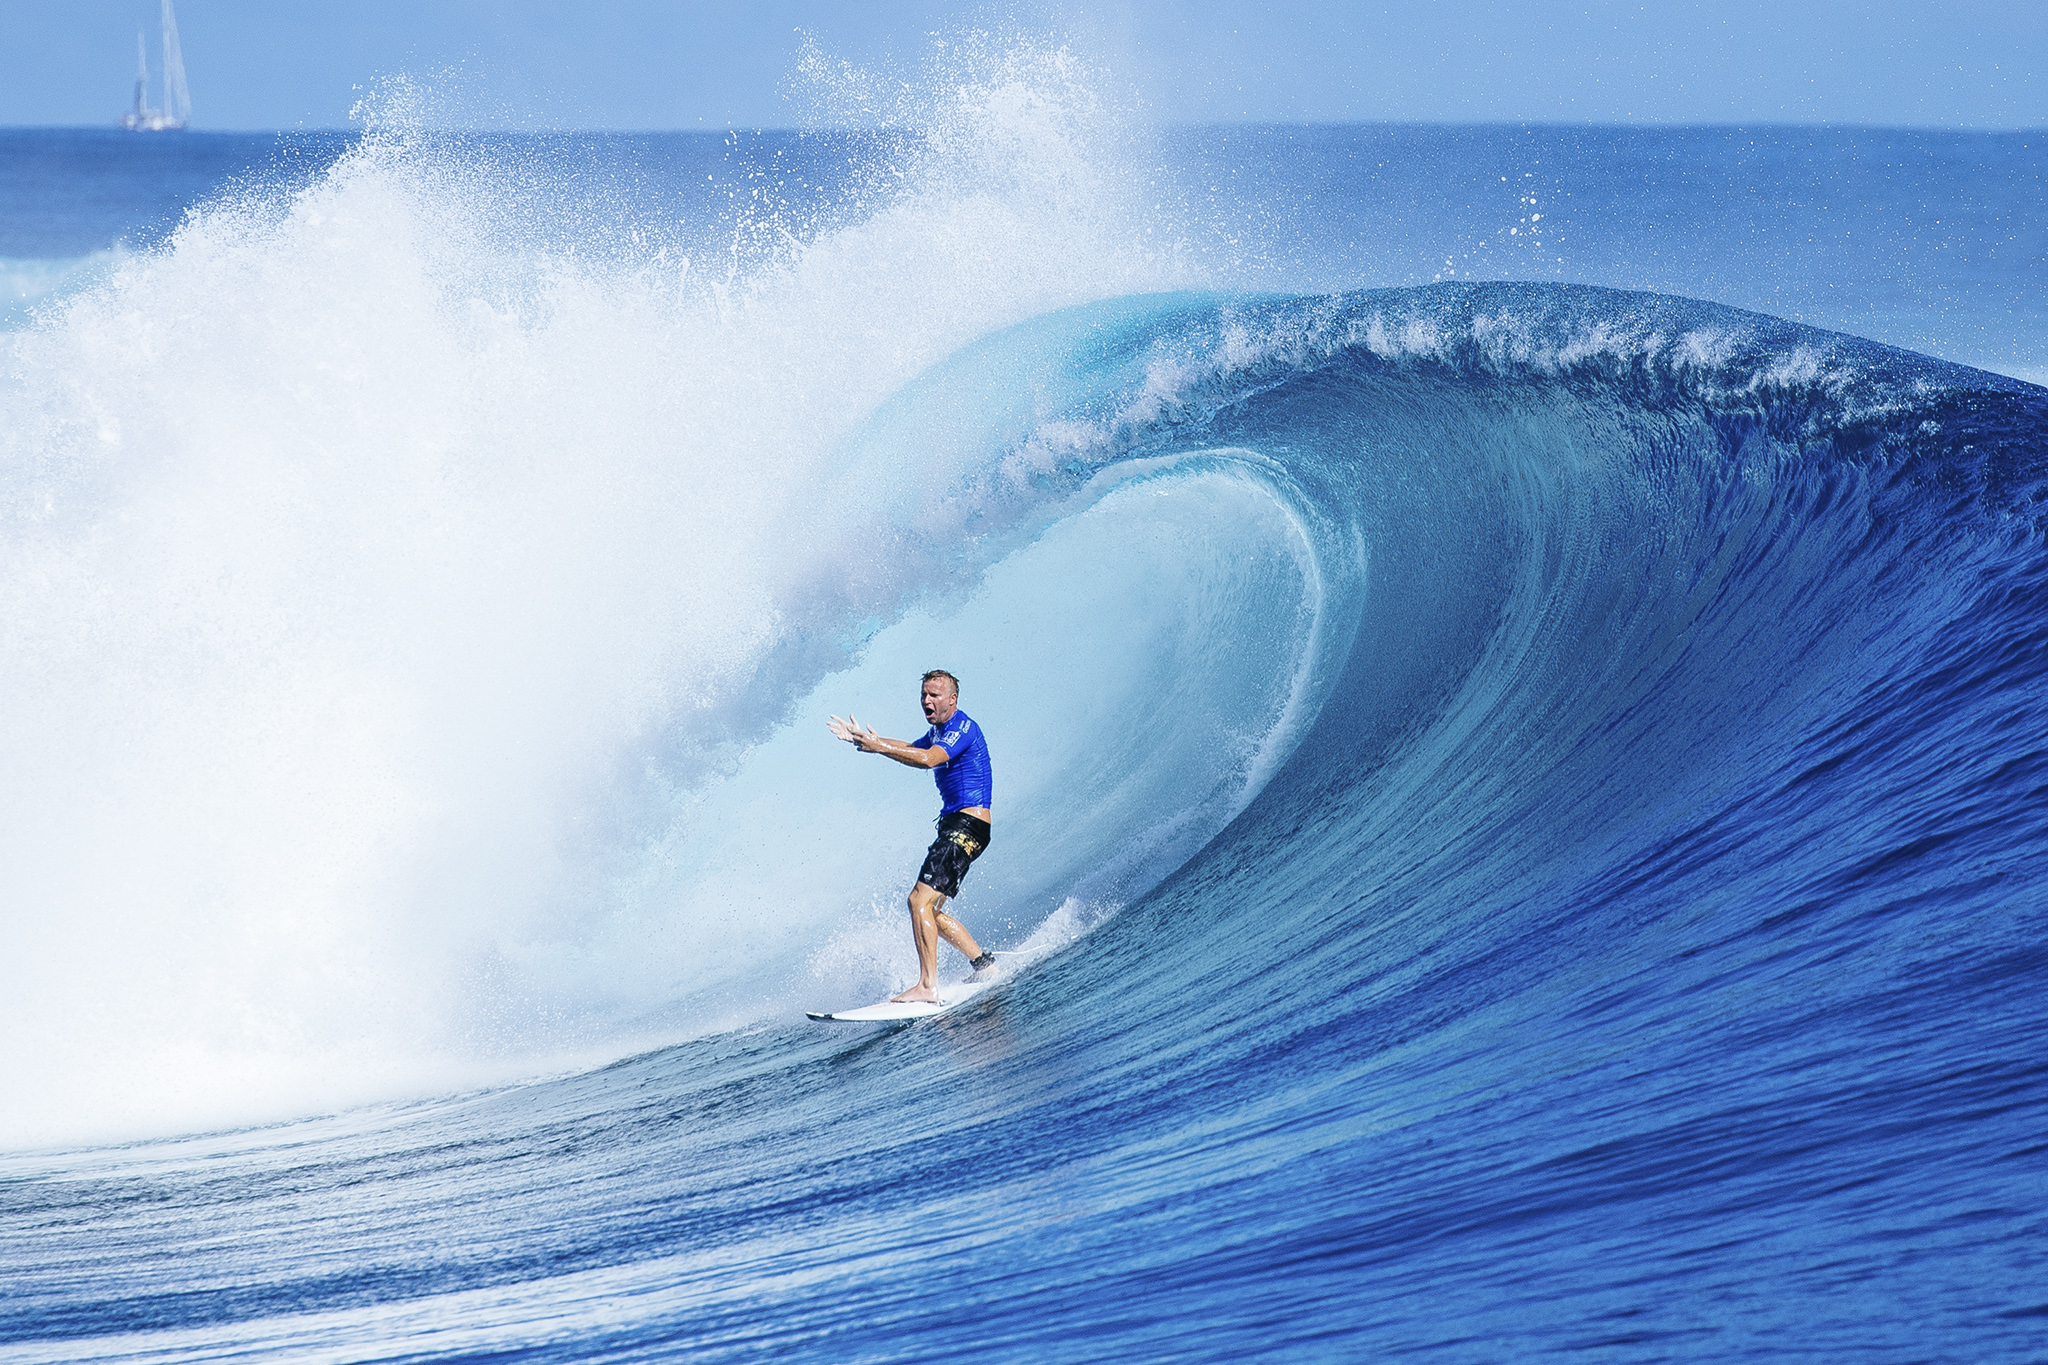 Taj Burrow of Australia (pictured) eliminated from the Fiji Pro during round three at Cloudbreak, Tavarua on Wednesday June 15, 2016. PHOTO: © WSL/ Sloane SOCIAL: @edsloanephoto @wsl This image is the copyright of the World Surf League and is provided royalty free for editorial use only, in all media now known or hereafter created. No commercial rights granted. Sale or license of the images is prohibited. This image is a factually accurate rendering of what it depicts and has not been modified or augmented except for standard cropping and toning. ALL RIGHTS RESERVED.